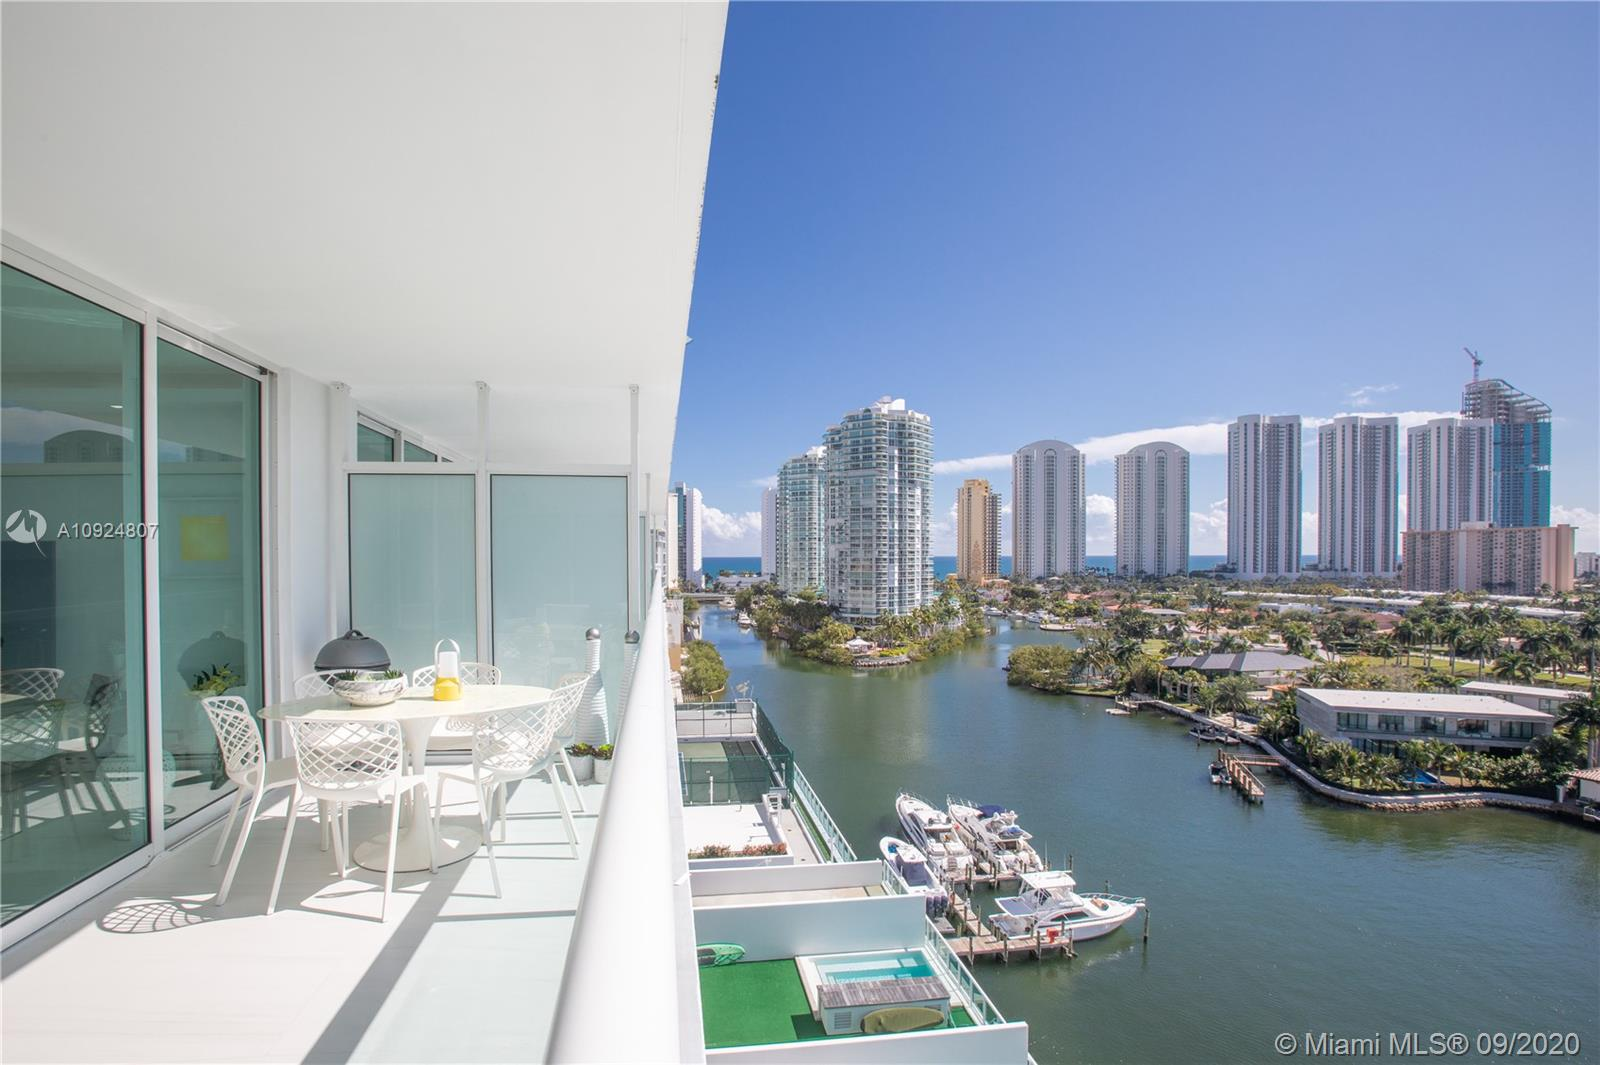 A perfect admirable exclusive apartment for sale at 400 Sunny Isles. This fantastic and unique apartment offers one of the most beautiful views in Miami. It is a south exposure with east and west views! Great sunrises and sunsets. It can be sold furnished/negotiable. A flow-thru floor plan exposes this amazing unit to several views! 3 bedrooms and 2 1/2 baths. 3 assigned parking spaces. 2 storage rooms. A very spacious living area with a great balcony. Just a block from the beach. A private marina is available! Kitchen with quartz countertops, wine cooler, italian porcelain floorings and walls. Lots of storage. Building has fantastic amenities like beautiful pool with bar, sauna, jacuzzi, tennis courts, spa, gym, 24 hr concierge and security